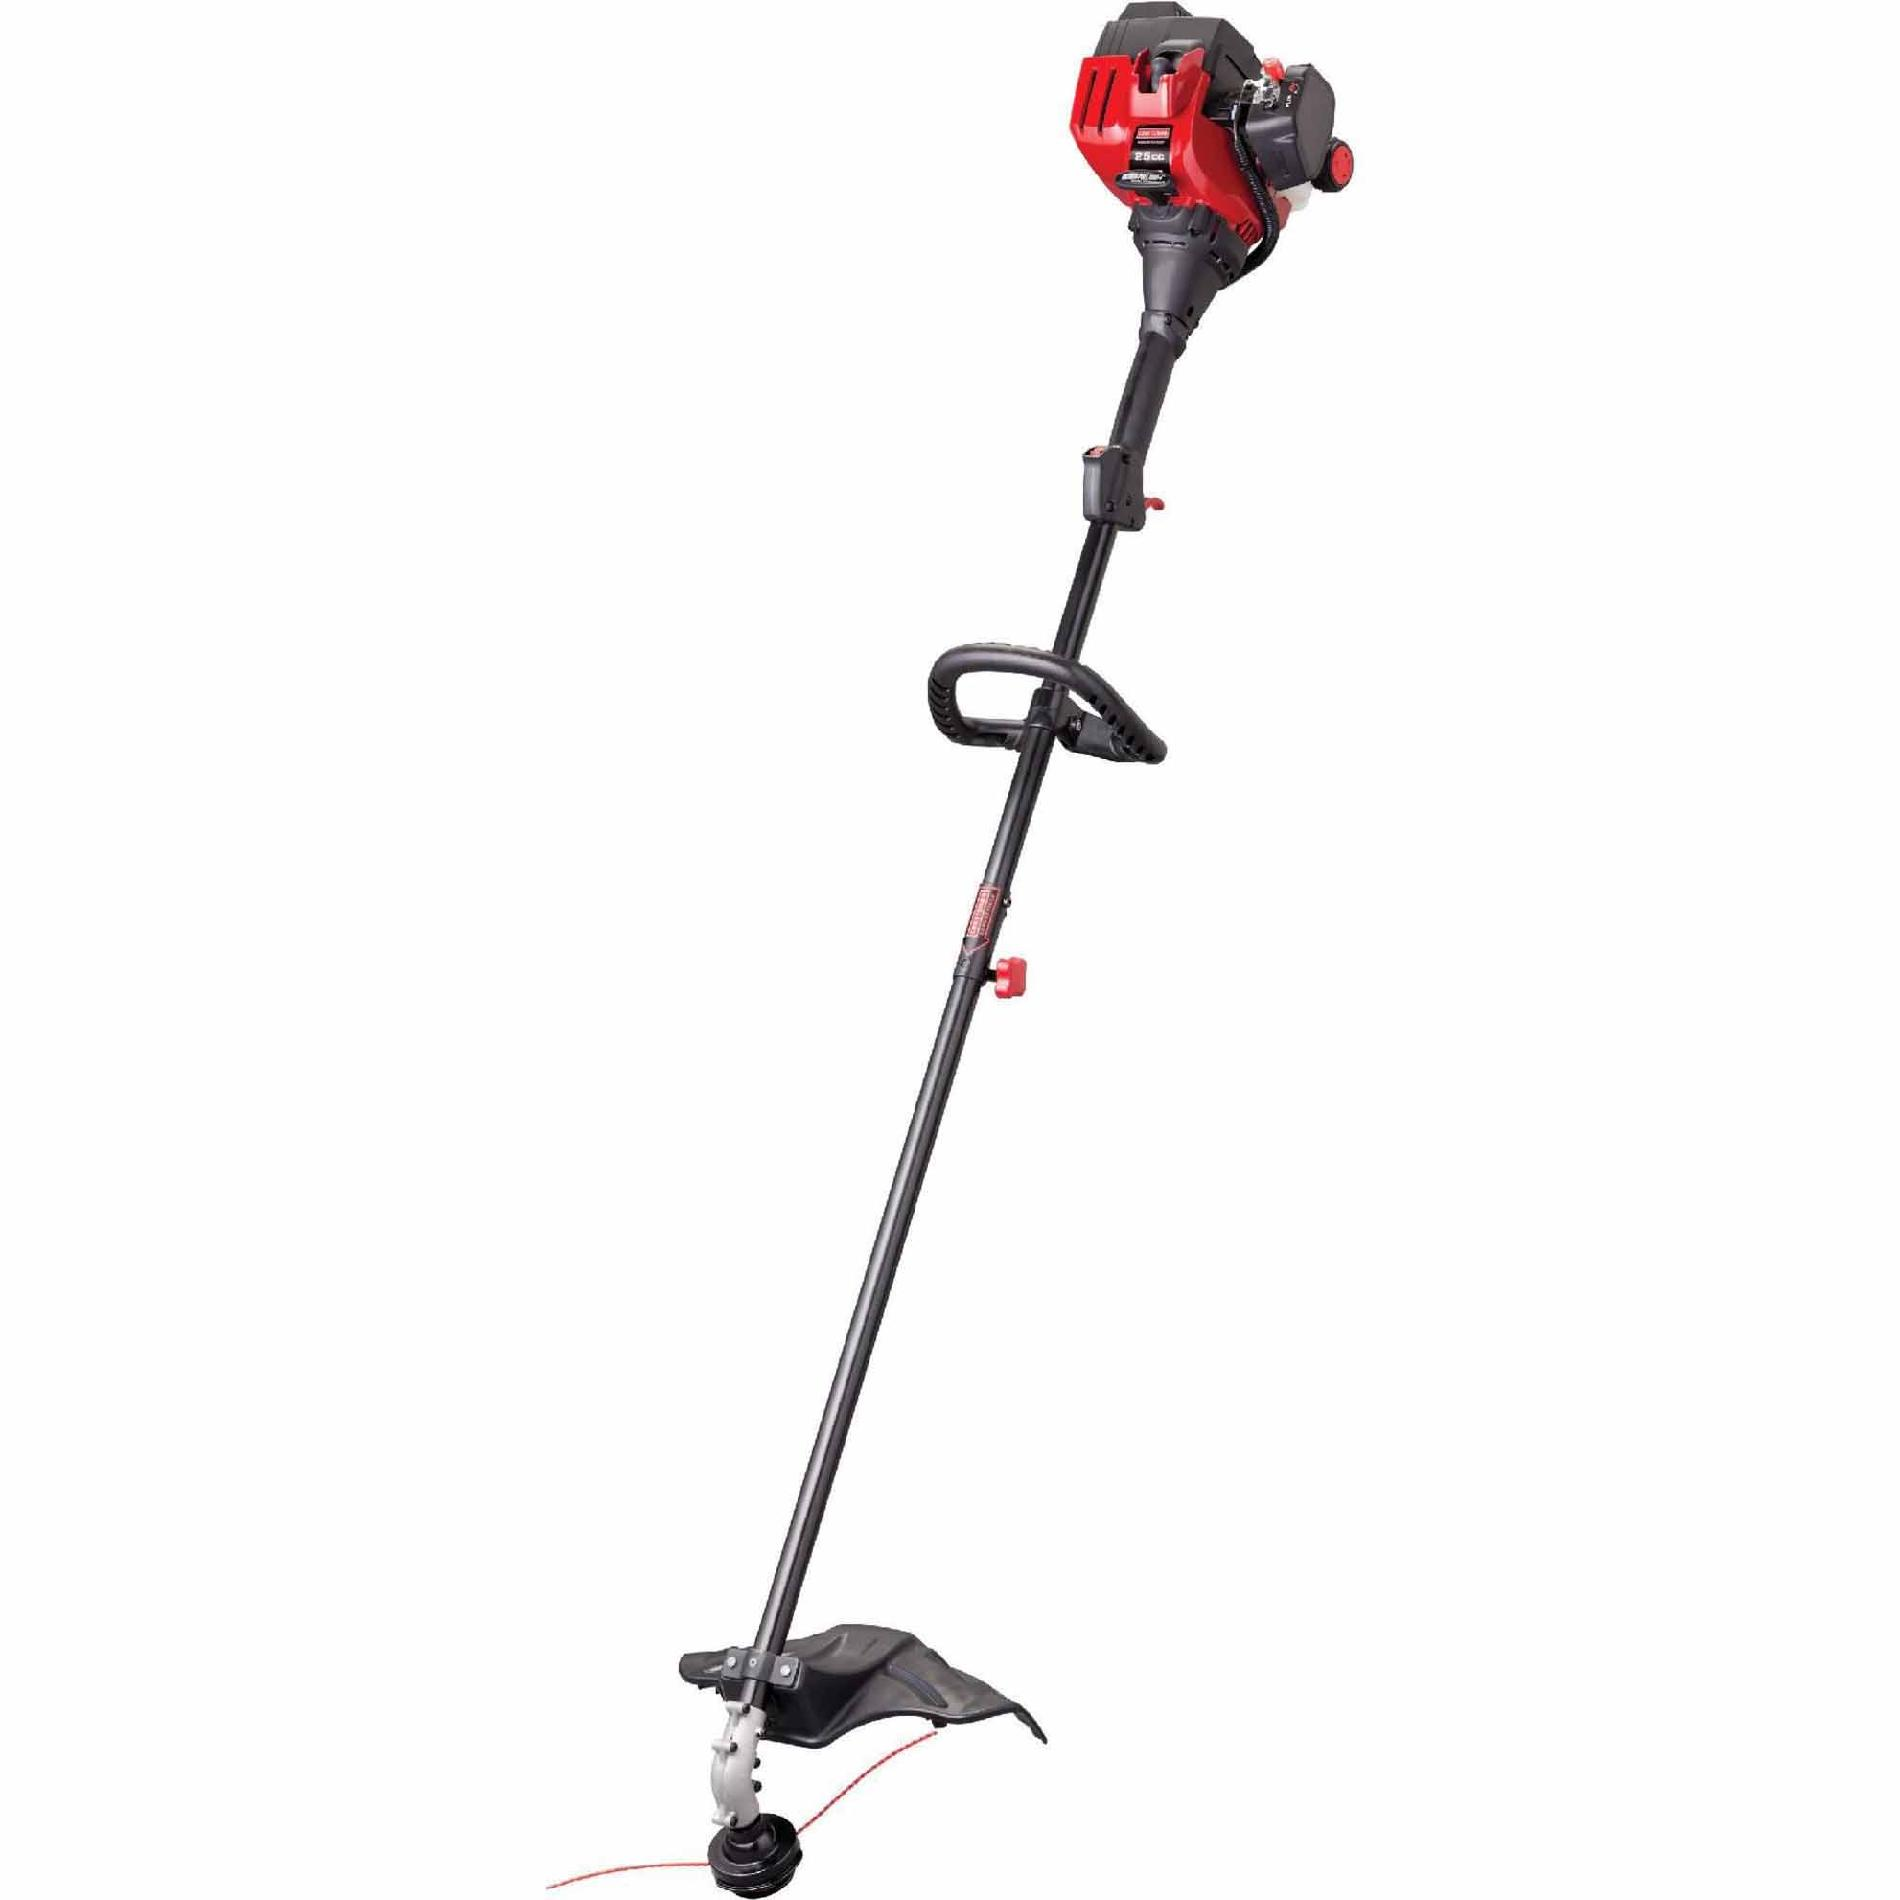 Craftsman WeedWacker™ Gas Trimmer 25cc* 2-Cycle Straight Shaft